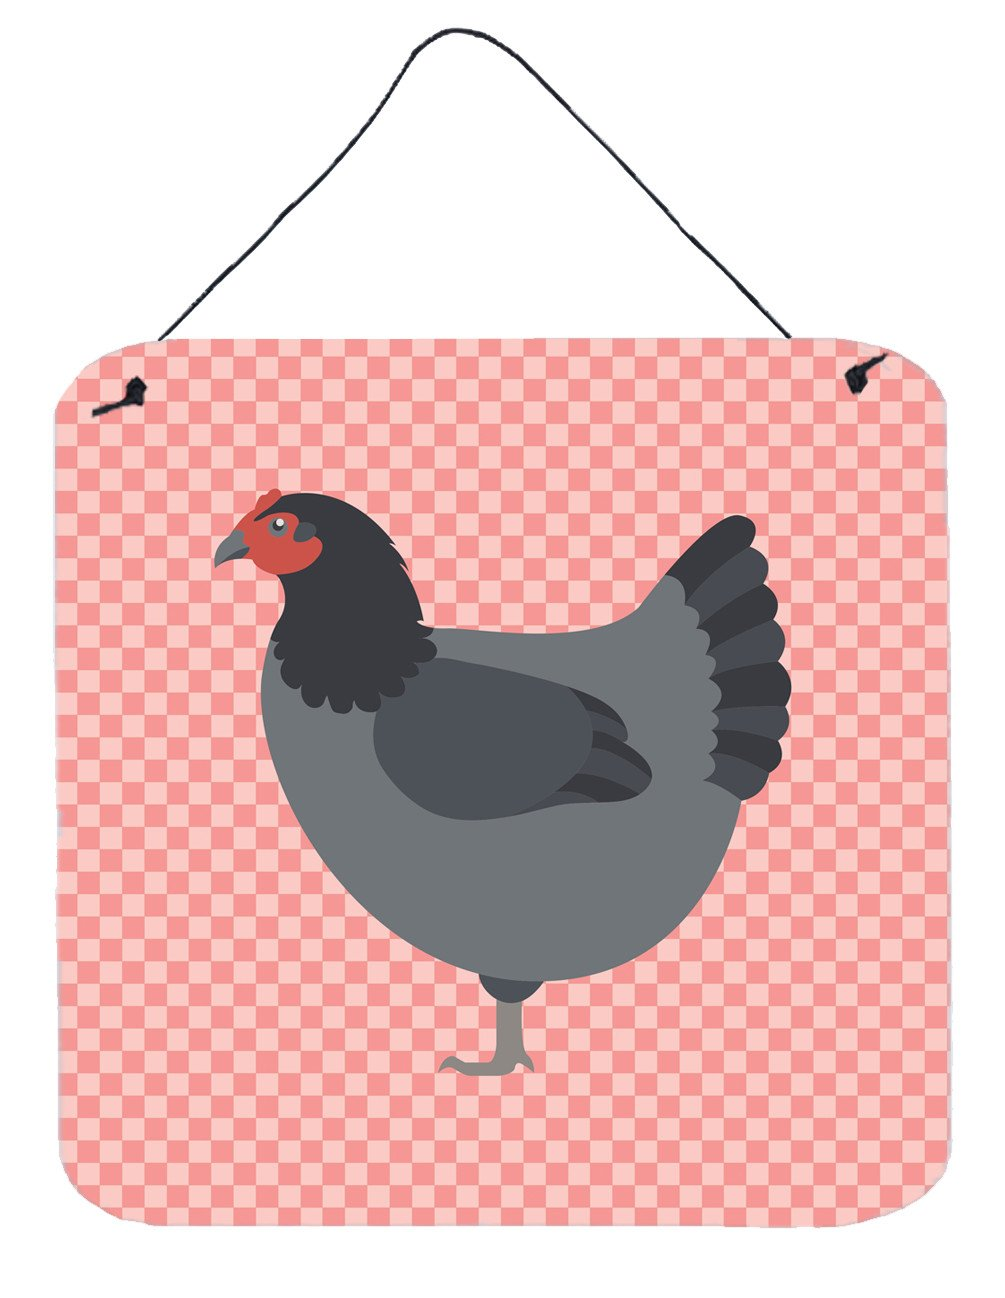 Jersey Giant Chicken Pink Check Wall or Door Hanging Prints BB7835DS66 by Caroline's Treasures